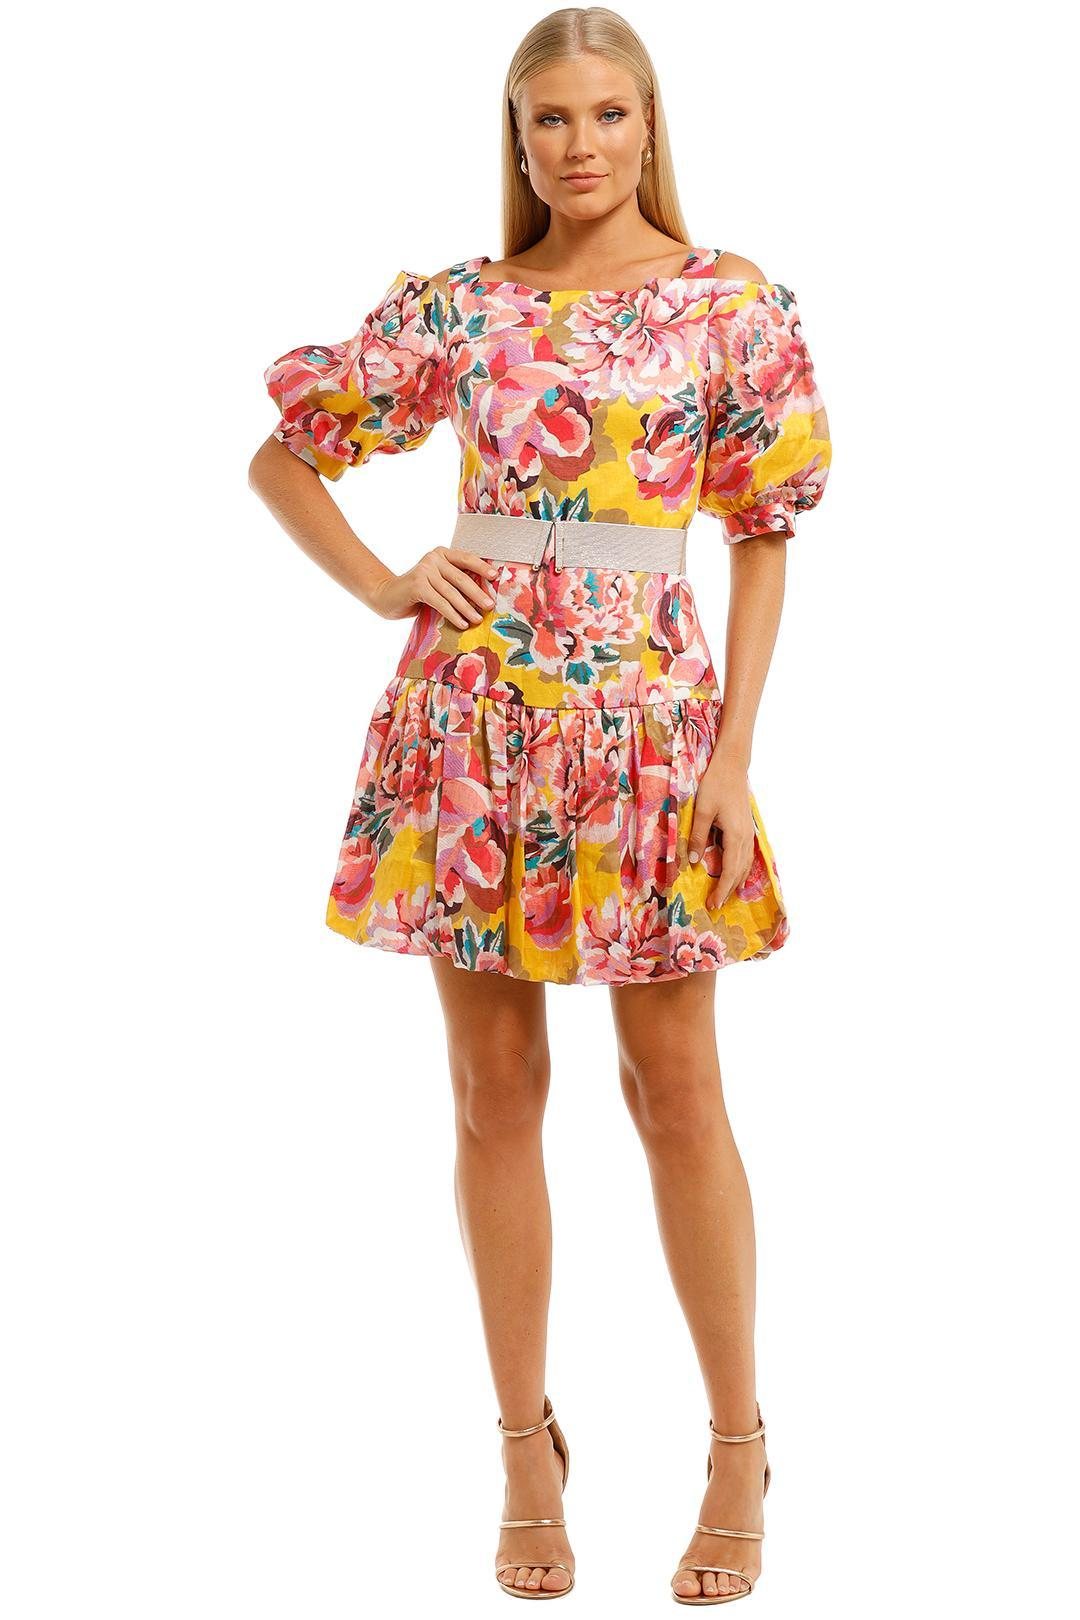 Ginger And Smart - Flourish Mini Dress